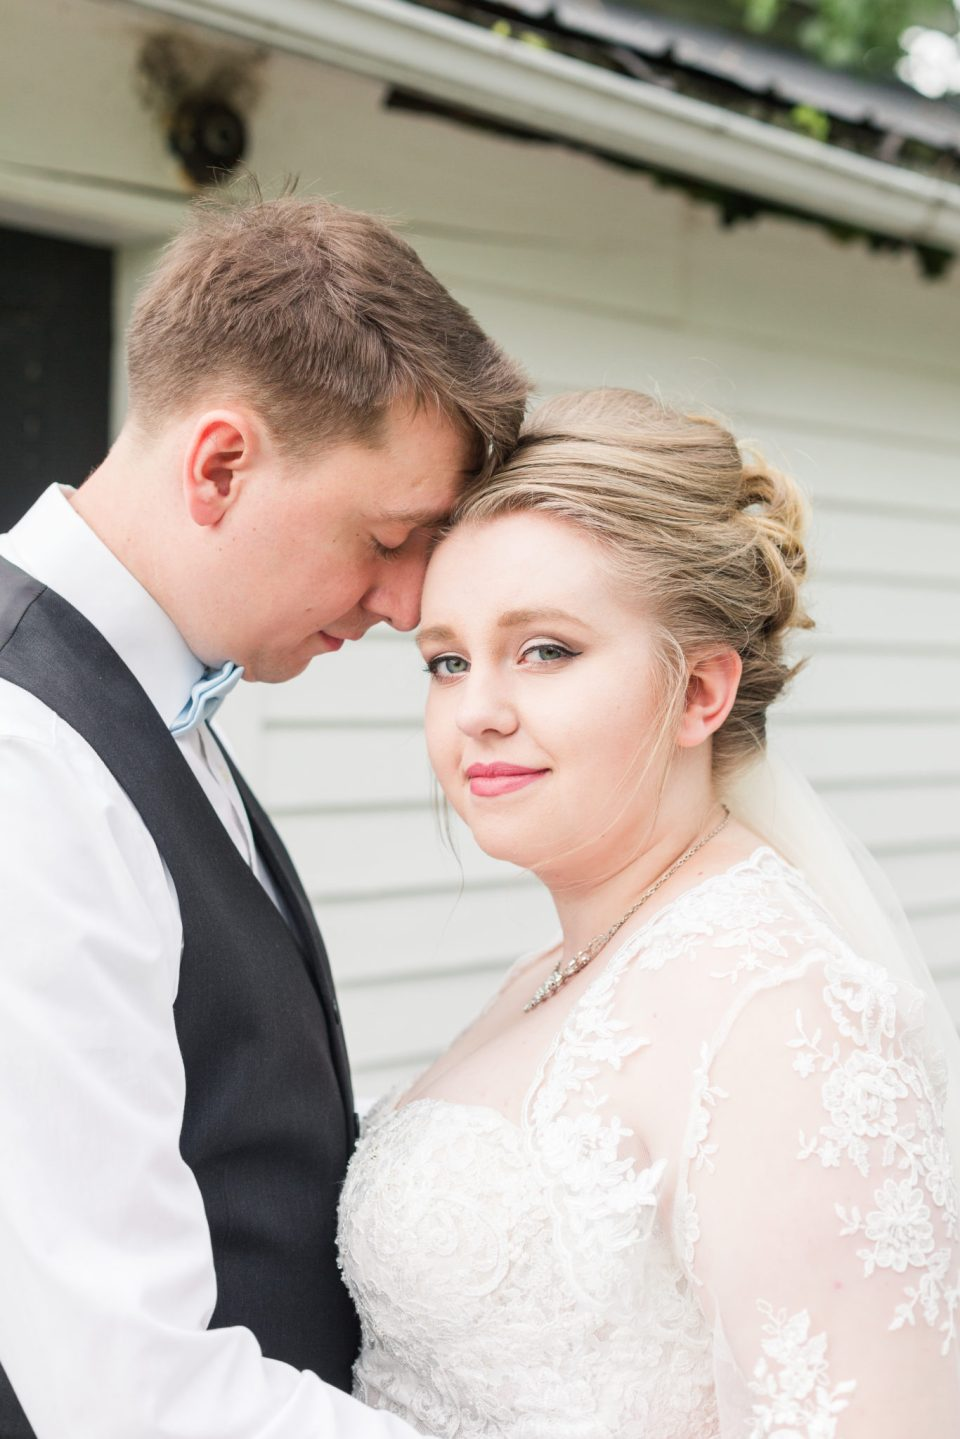 A bride smirks at the camera in a lace dress at A Friend's House